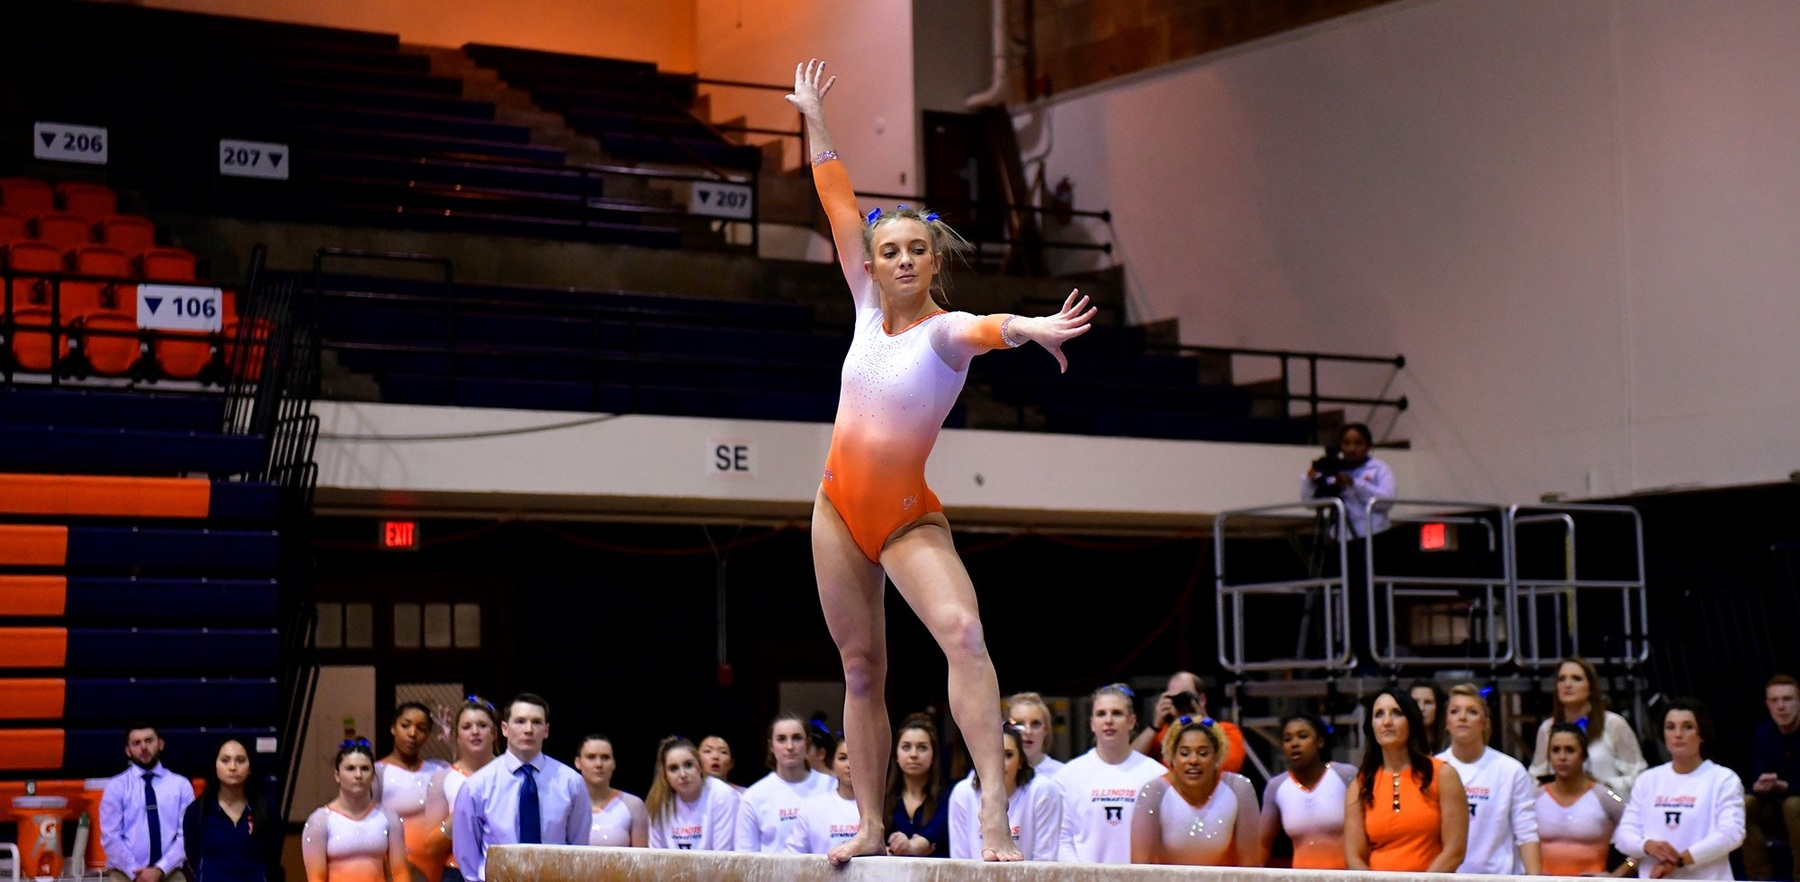 gymnast Brittany Jones strikes a pose during her routine